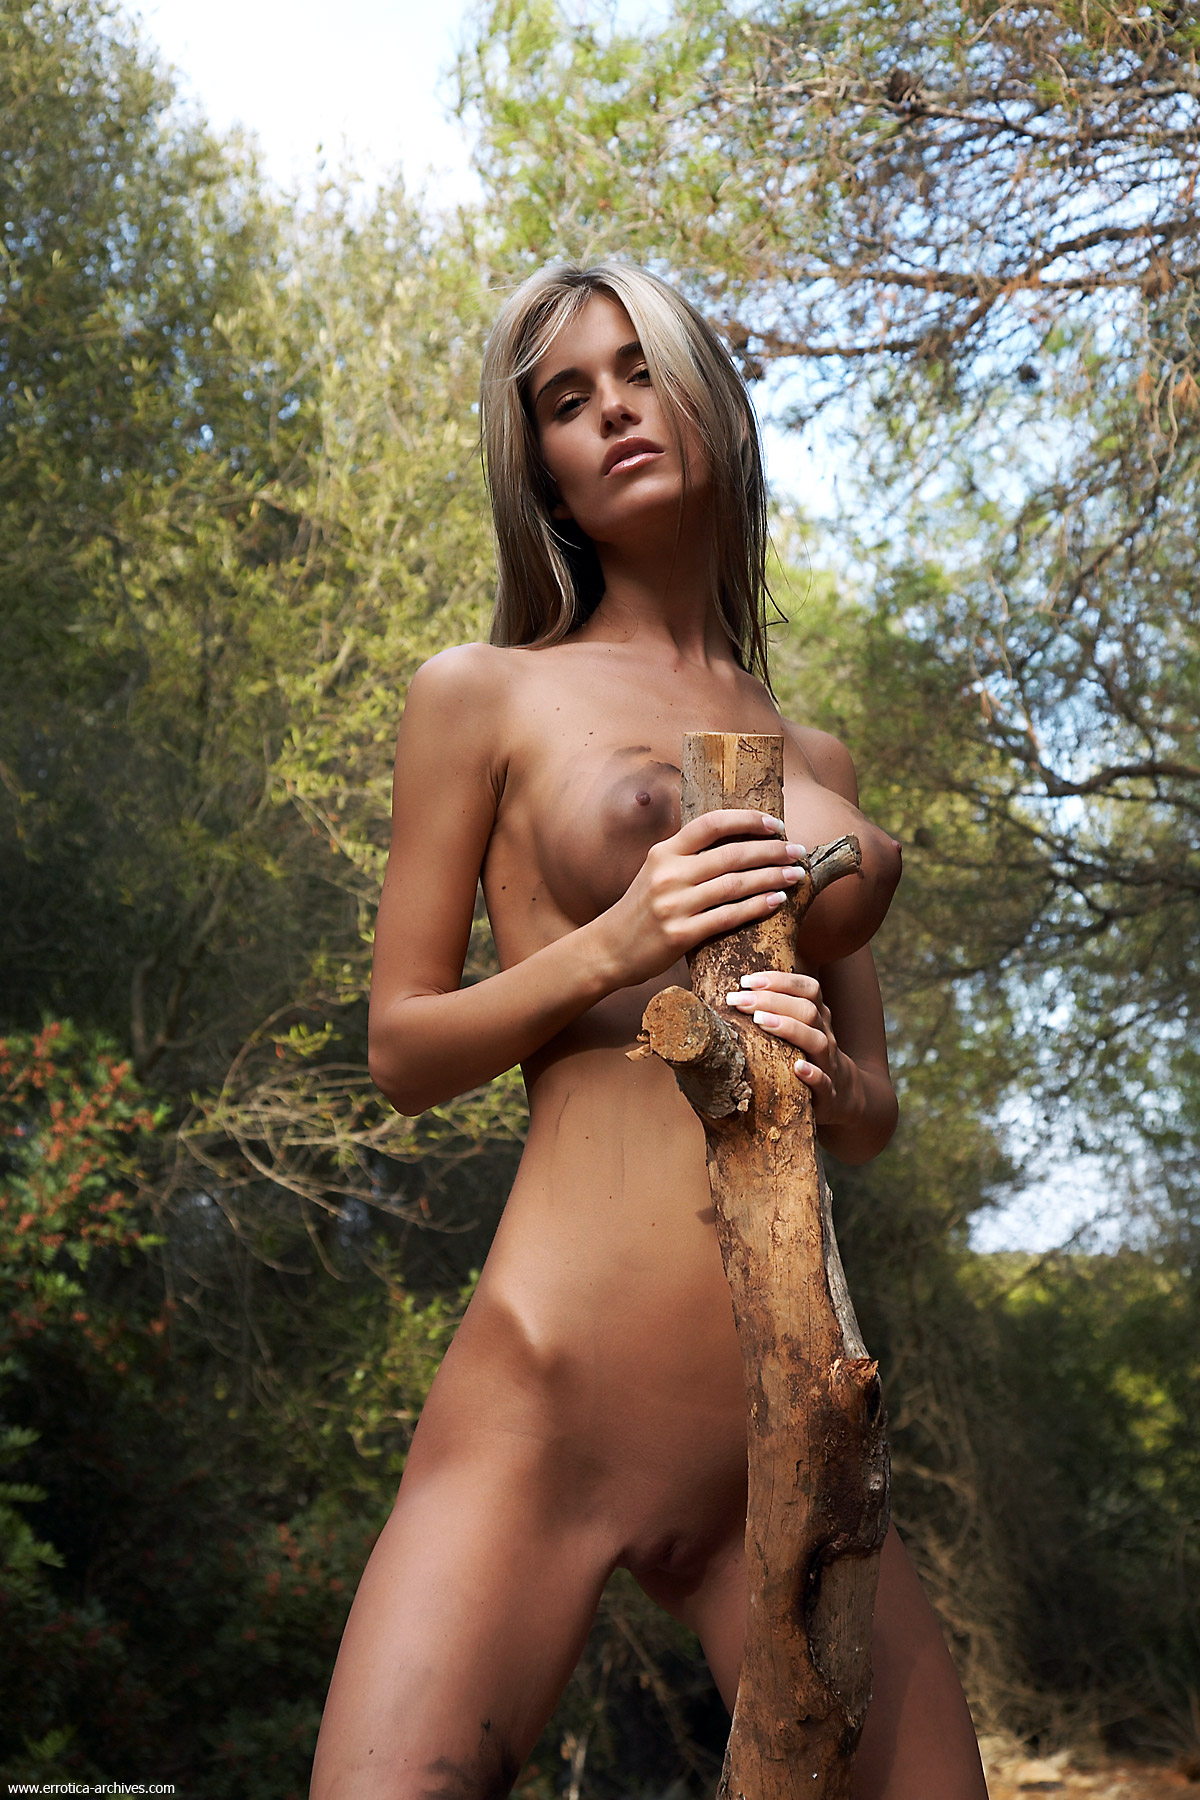 gallery Outdoor nudist